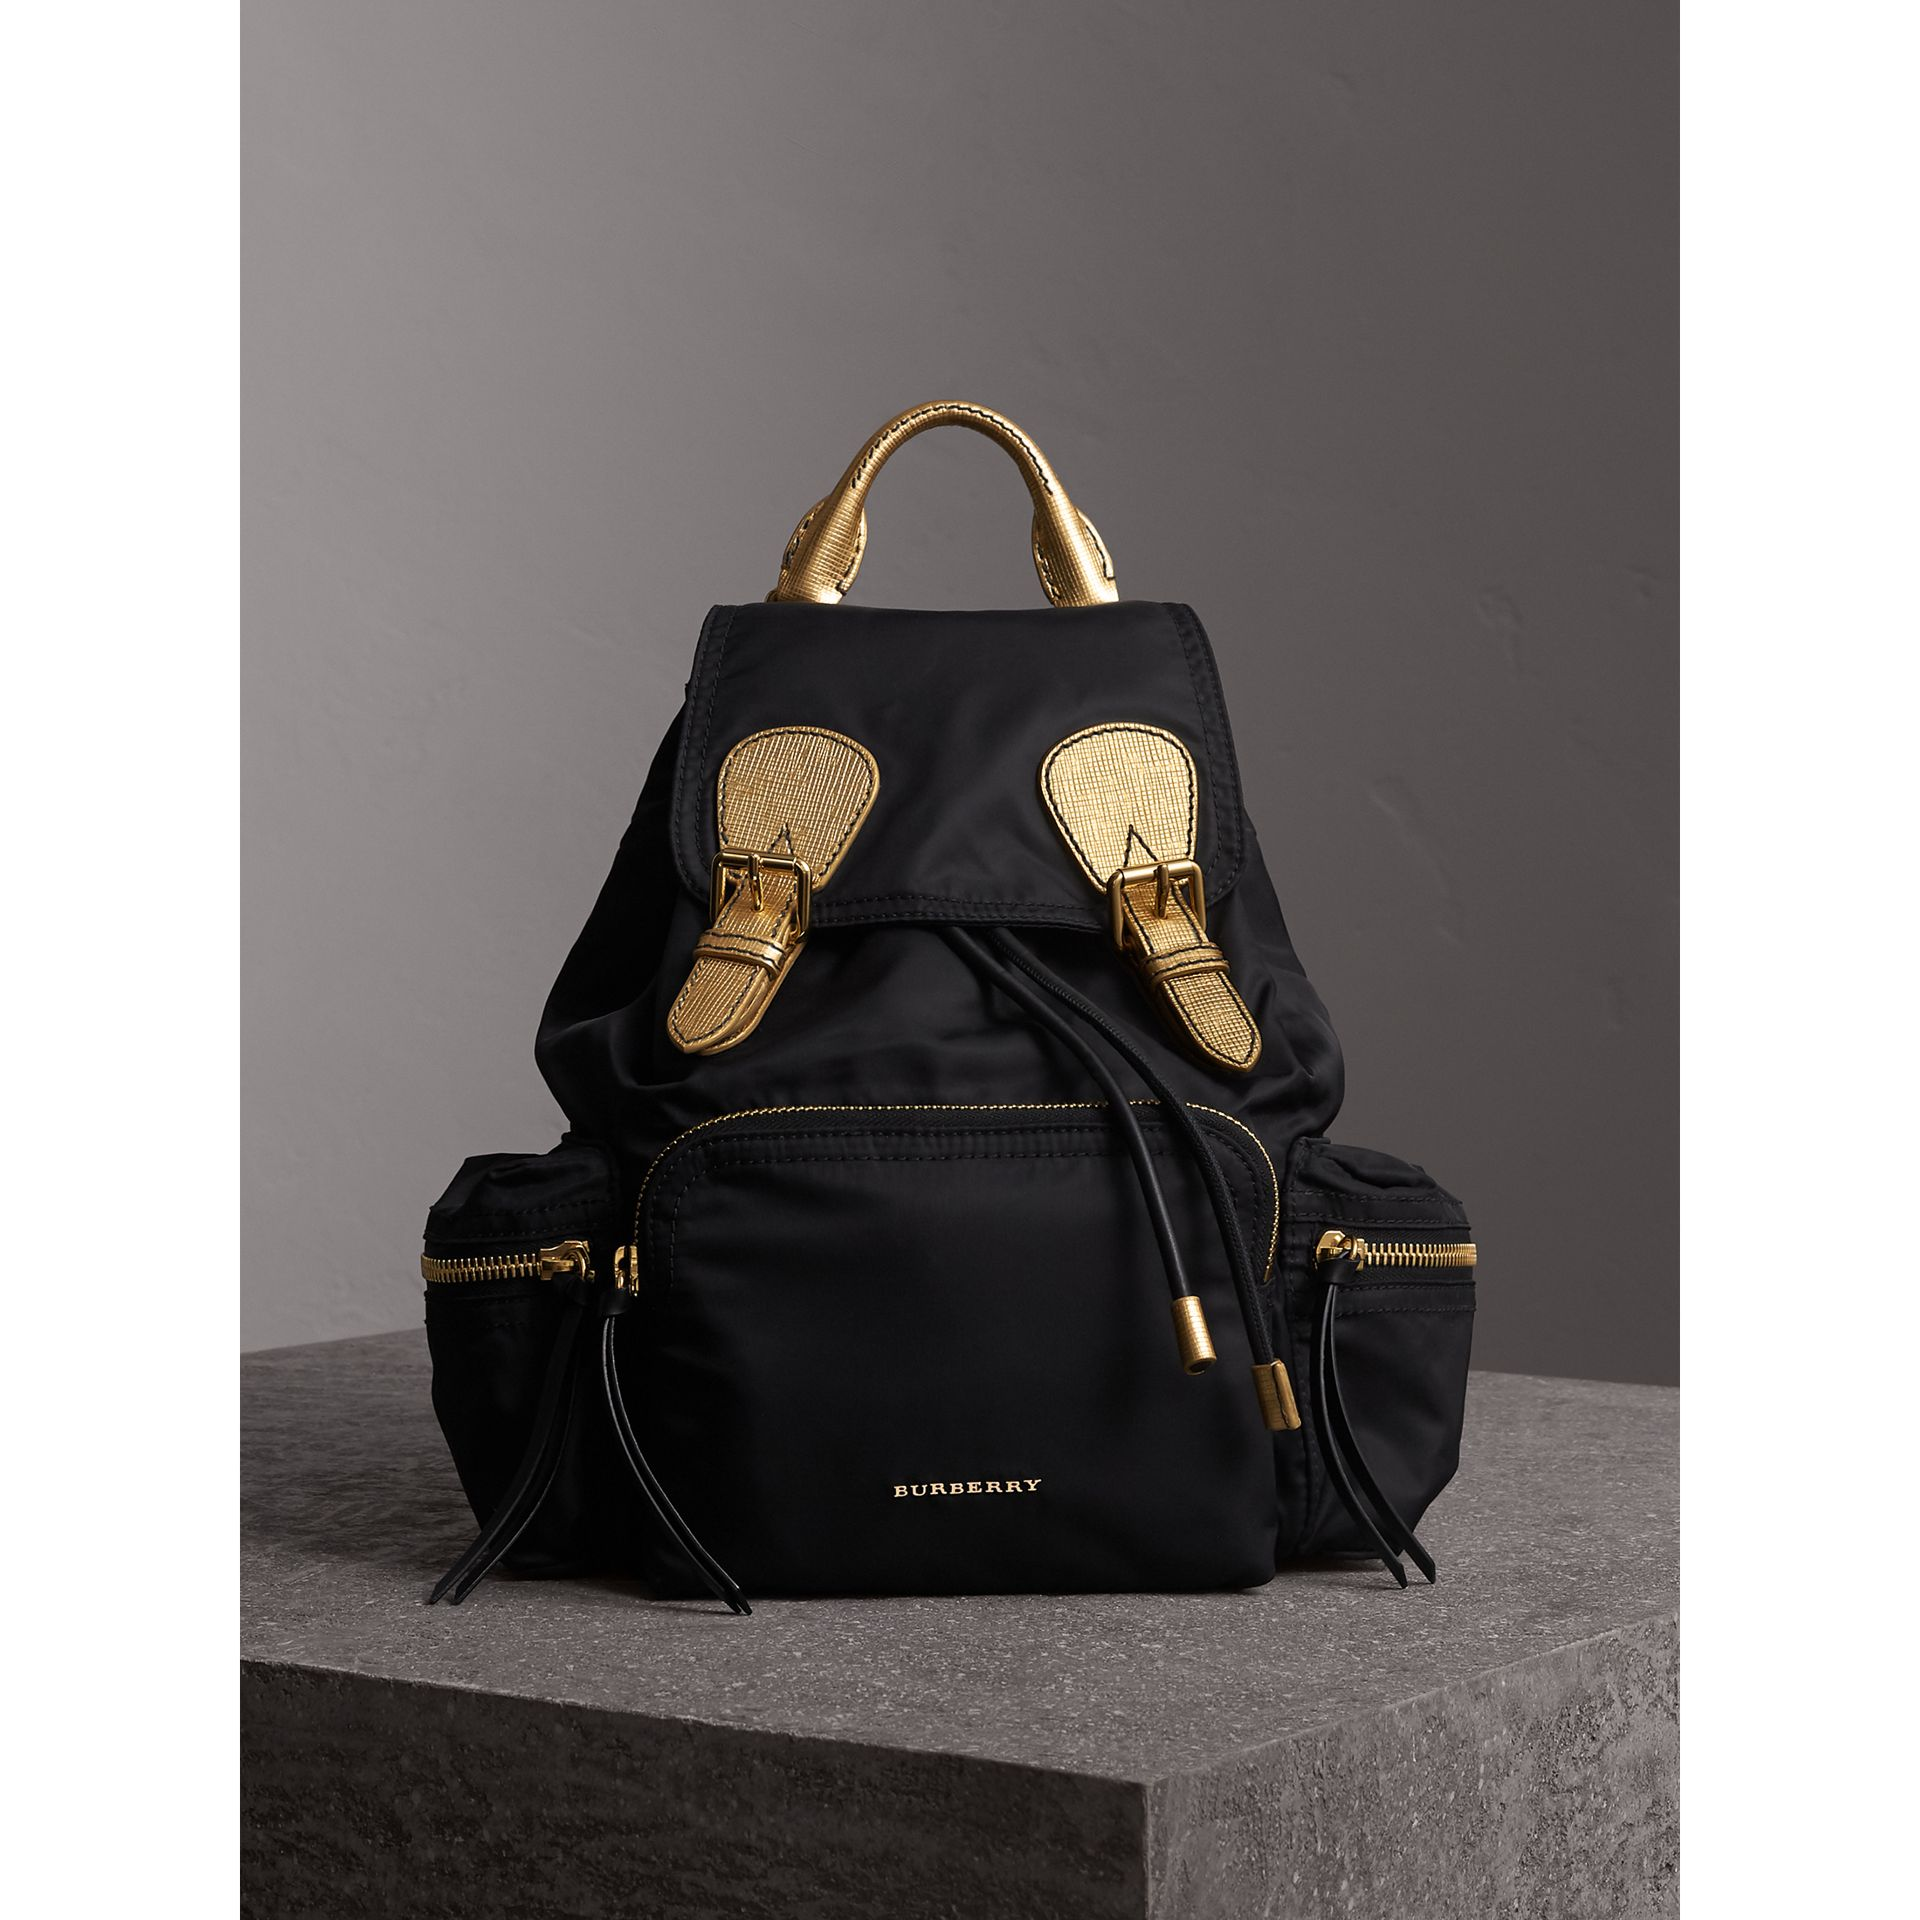 Sac The Rucksack moyen en nylon bicolore et cuir (Noir/or) - Femme | Burberry - photo de la galerie 1